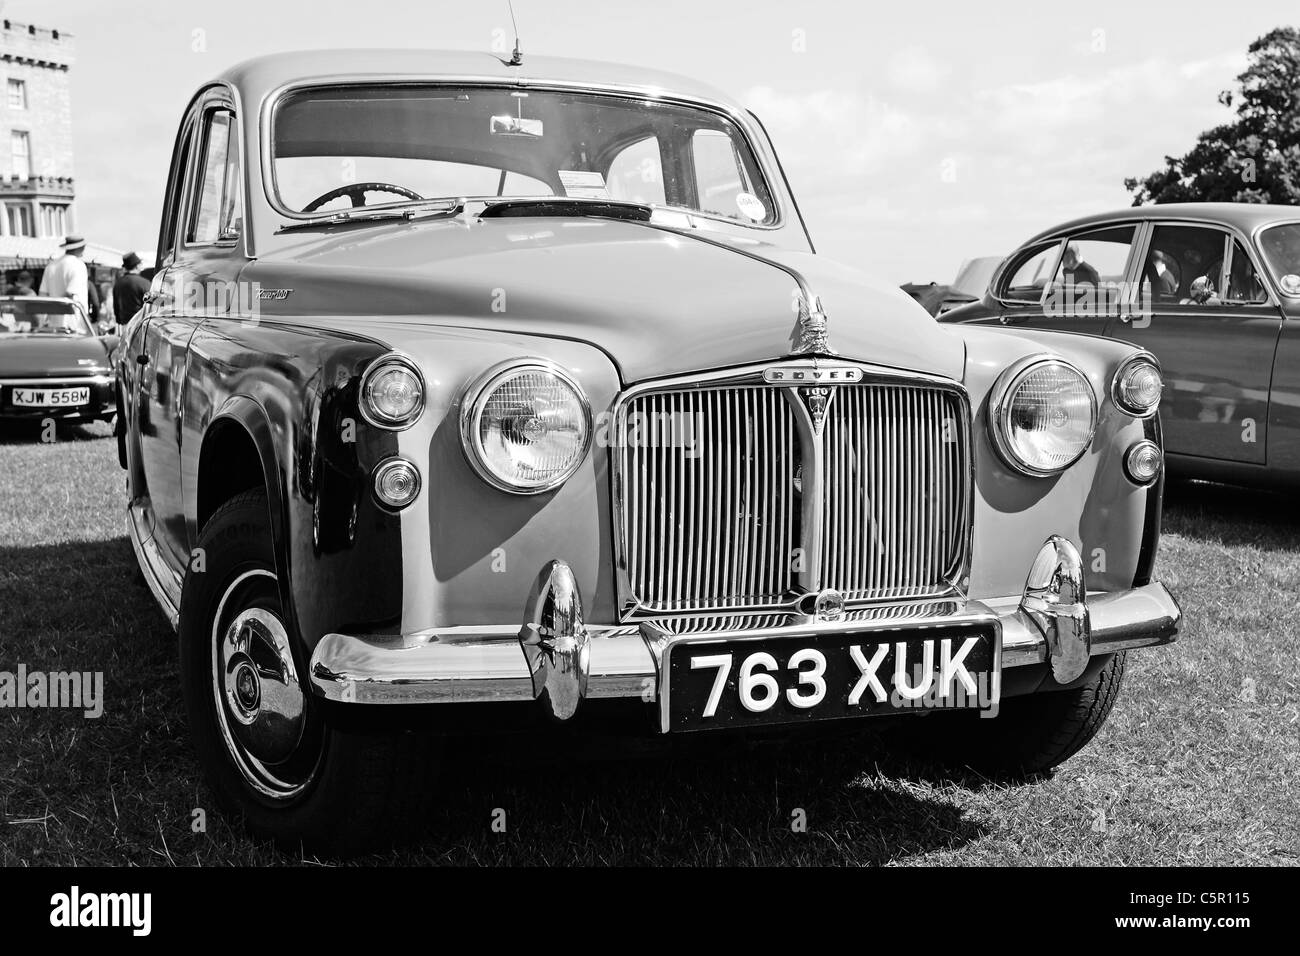 A black and white study of a classic Rover 100 saloon car Stock Photo